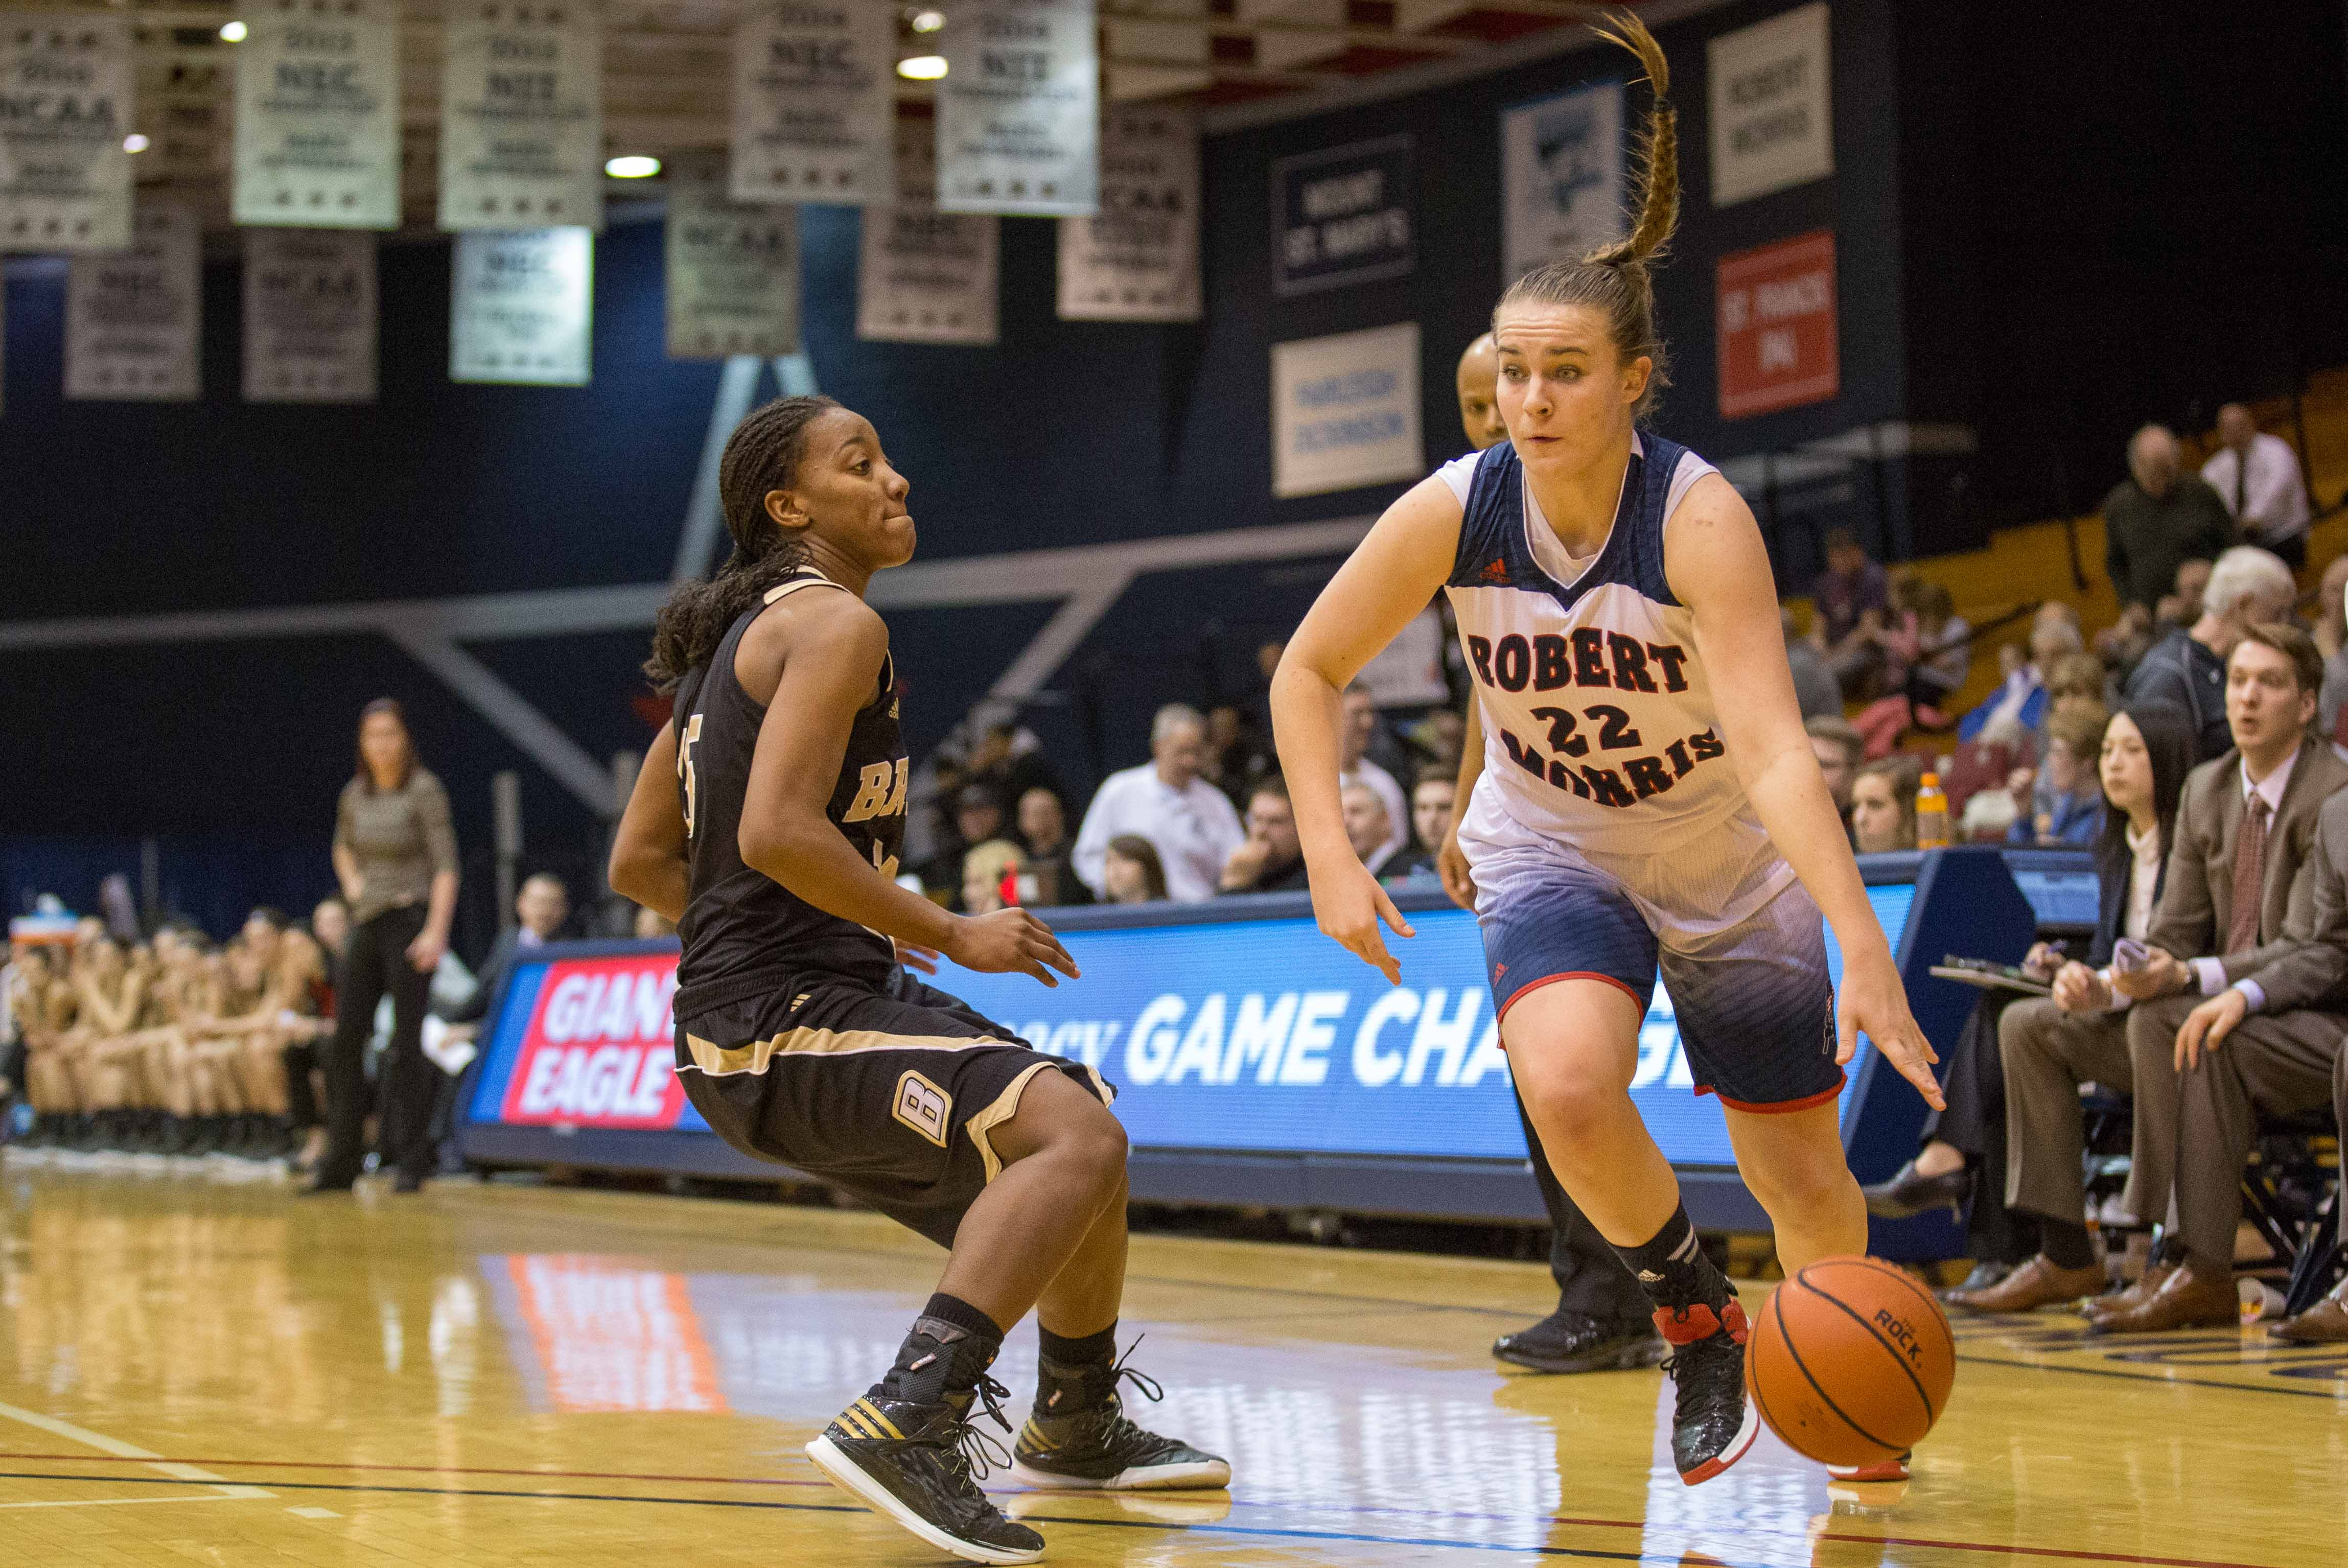 Megan Smith's 14 point performance jolted her team to a 30 point victory over Wagner Saturday.